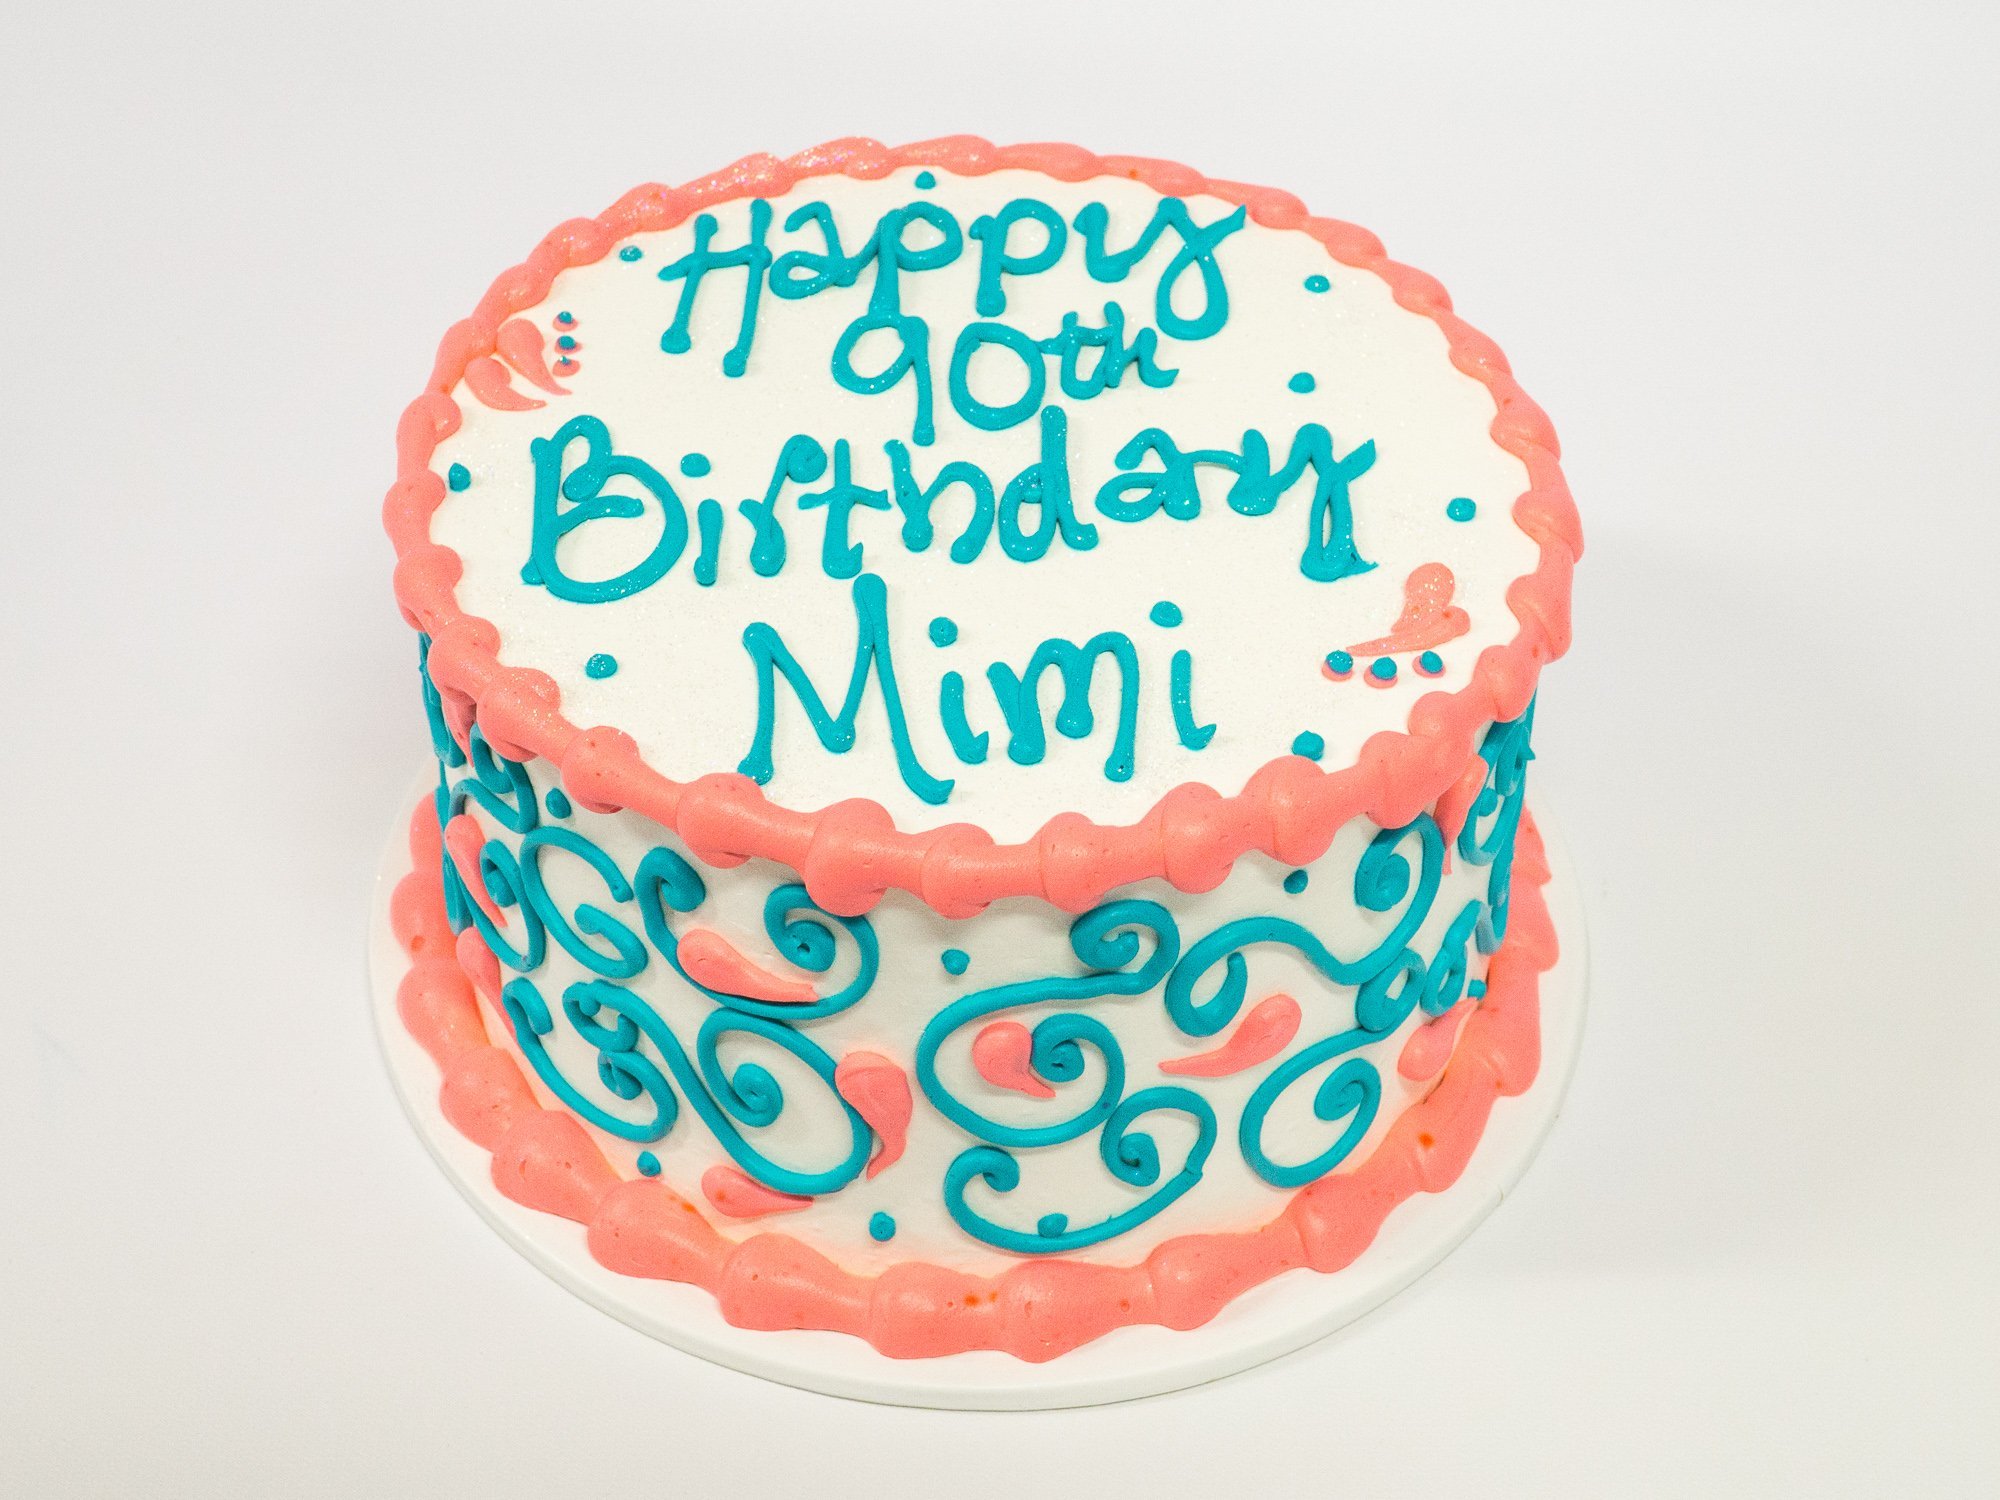 Astonishing Photo Of A Coral And Teal 90Th Birthday Cake Pattys Cakes And Funny Birthday Cards Online Elaedamsfinfo